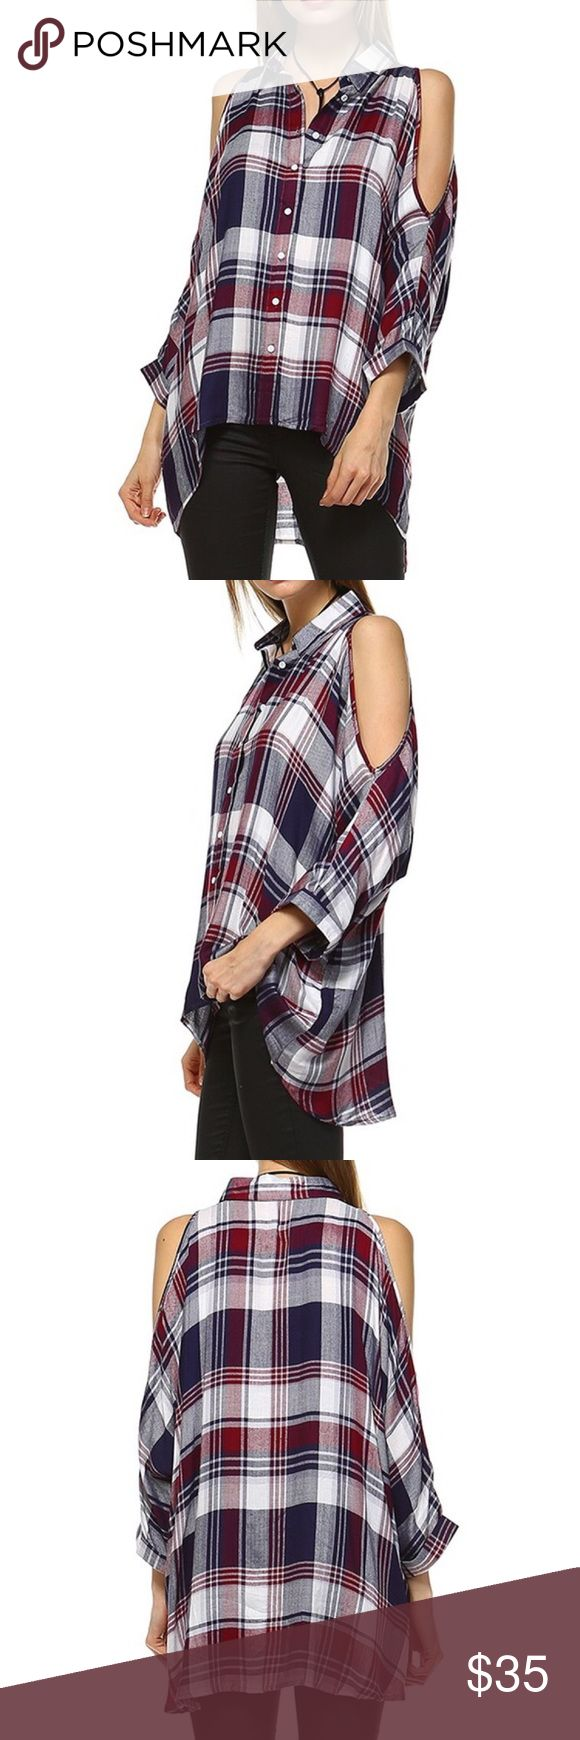 Cold Shoulder Plaid Top Brand new! Super cute! 15% off of bundles! FEEL LIKE MAKING AN OFFER? Please do it through the make an offer feature as I will no longer negotiate prices in the comments section. PRICE IS FINAL ON ITEMS $15 or less unless bundled. Hannah Beury Tops